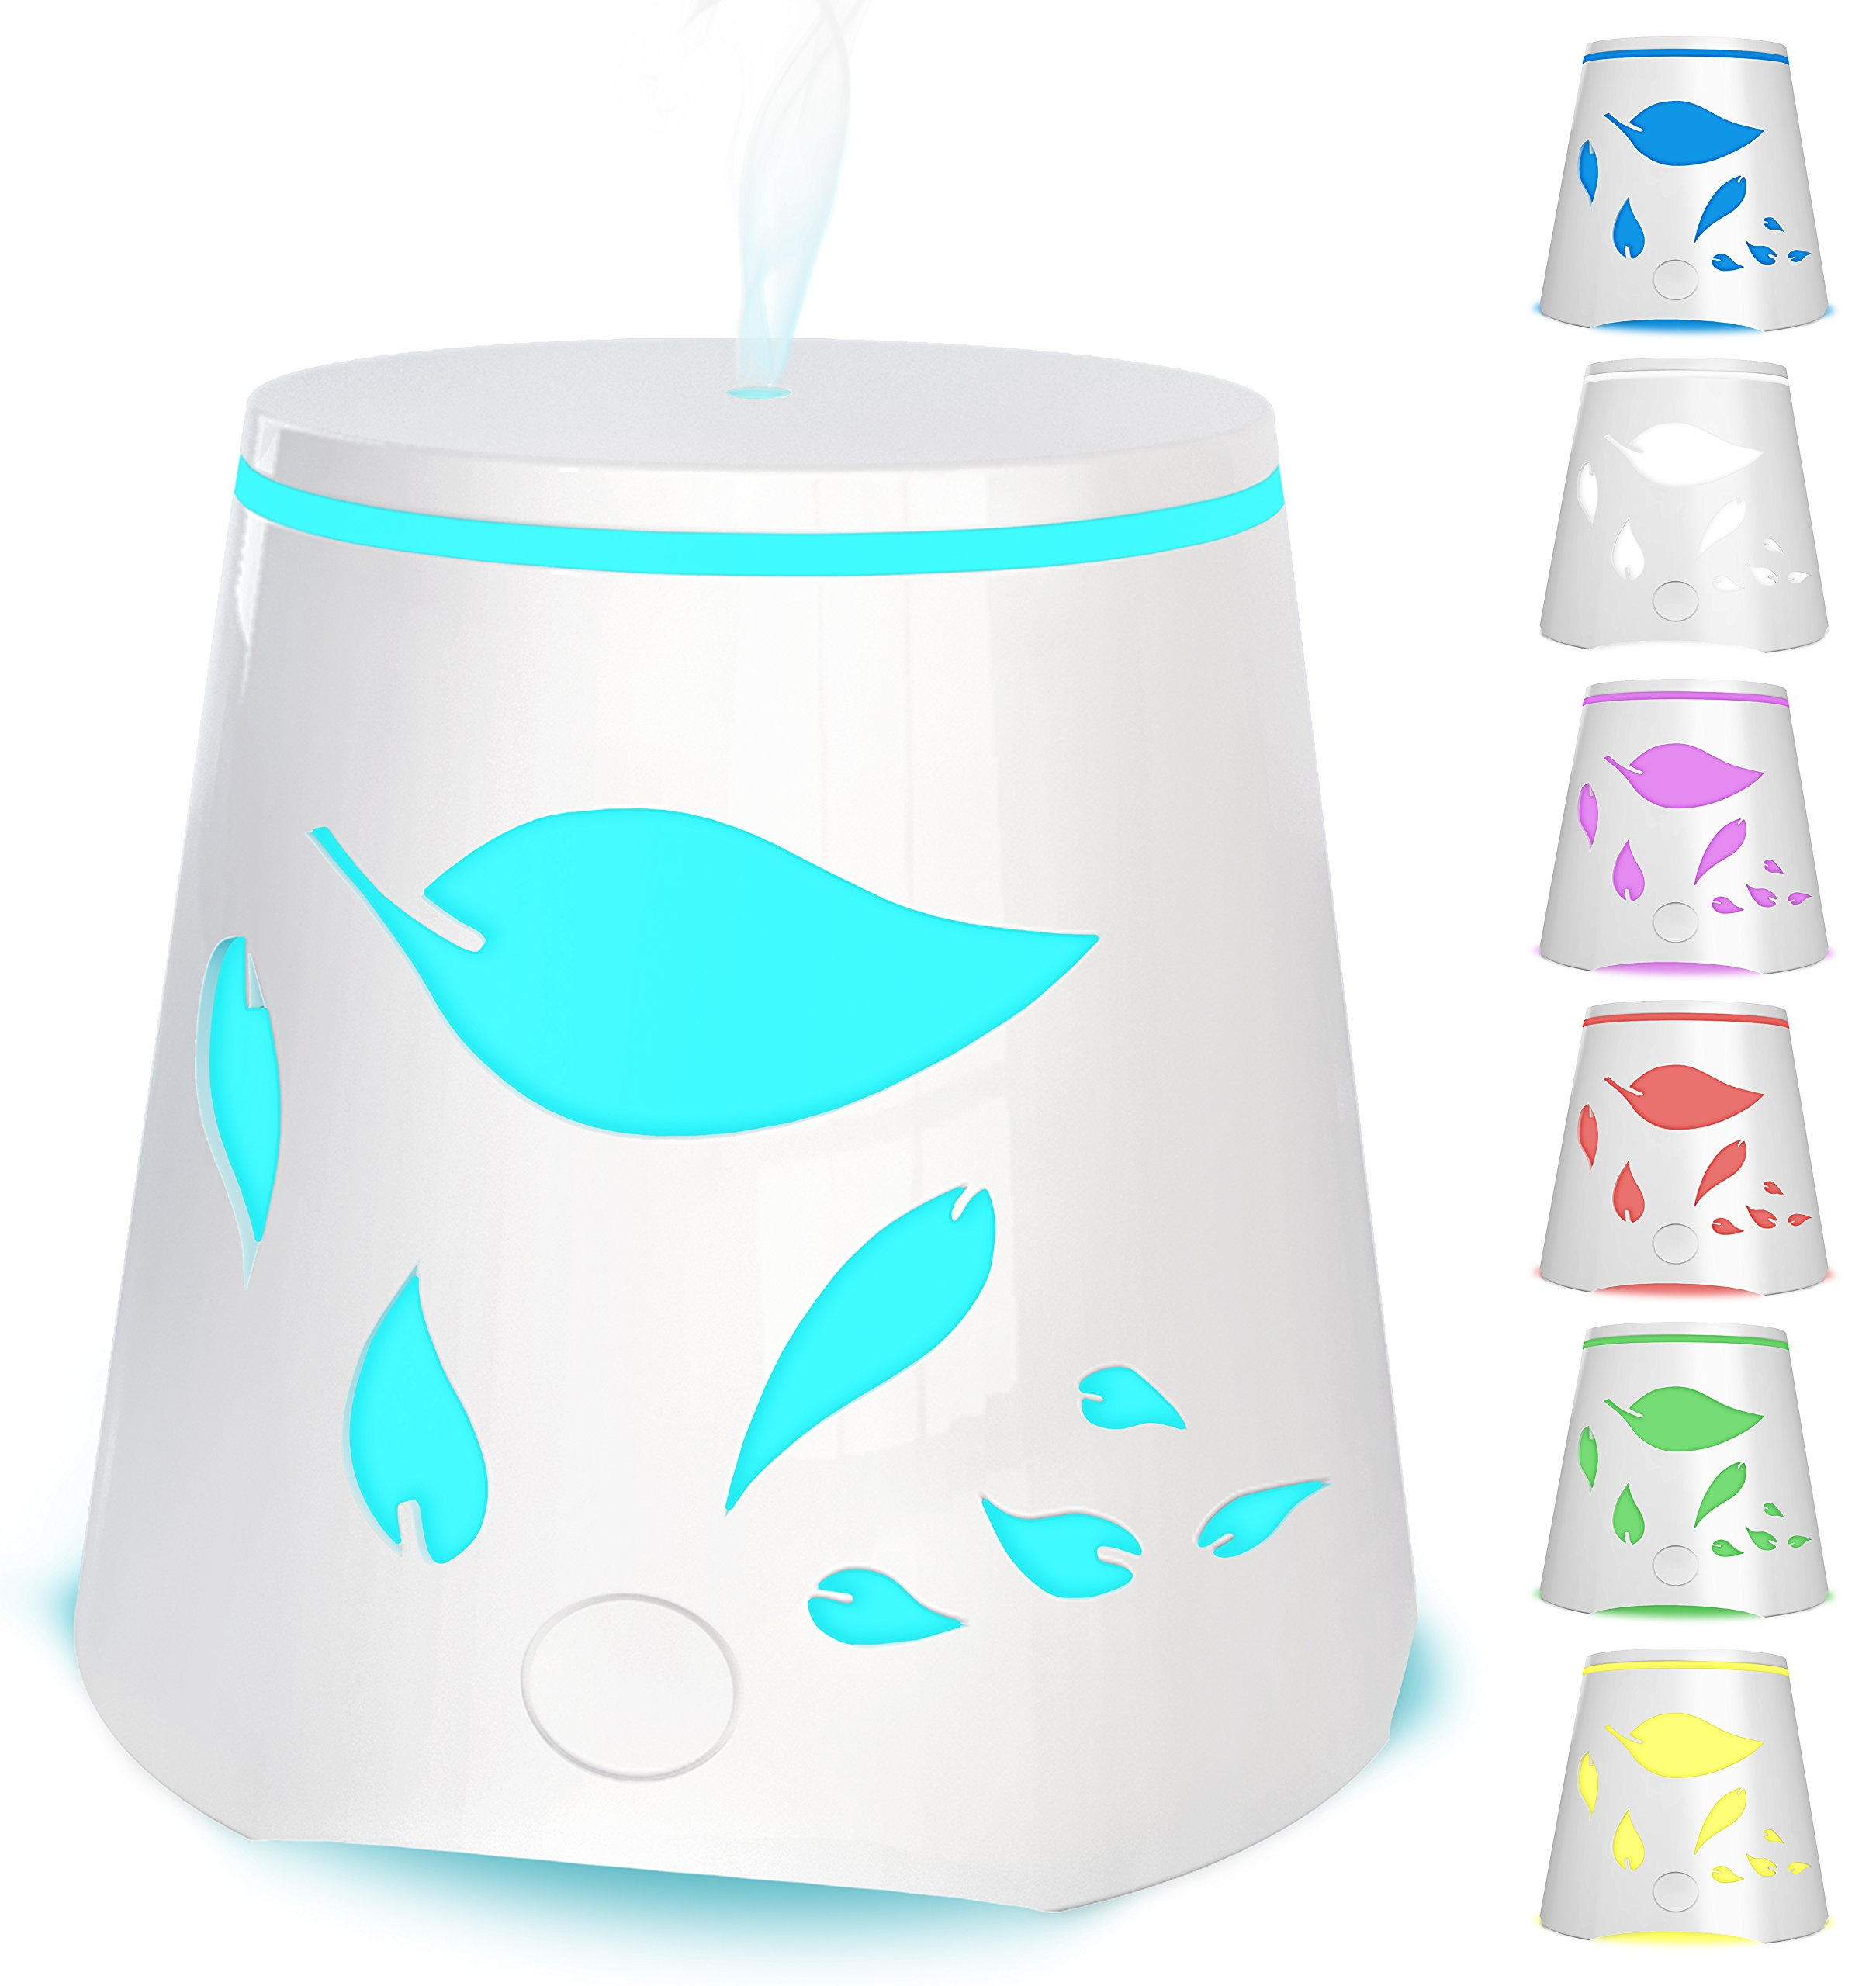 Essential Oil Diffuser 7 Color Changing Led Lights – Portable Ultrasonic Cool Mist Aromatherapy Oils Humidifier – Auto Shutoff Best Aroma Diffusers For Home Office Kids and Spa up to 800 sq ft room